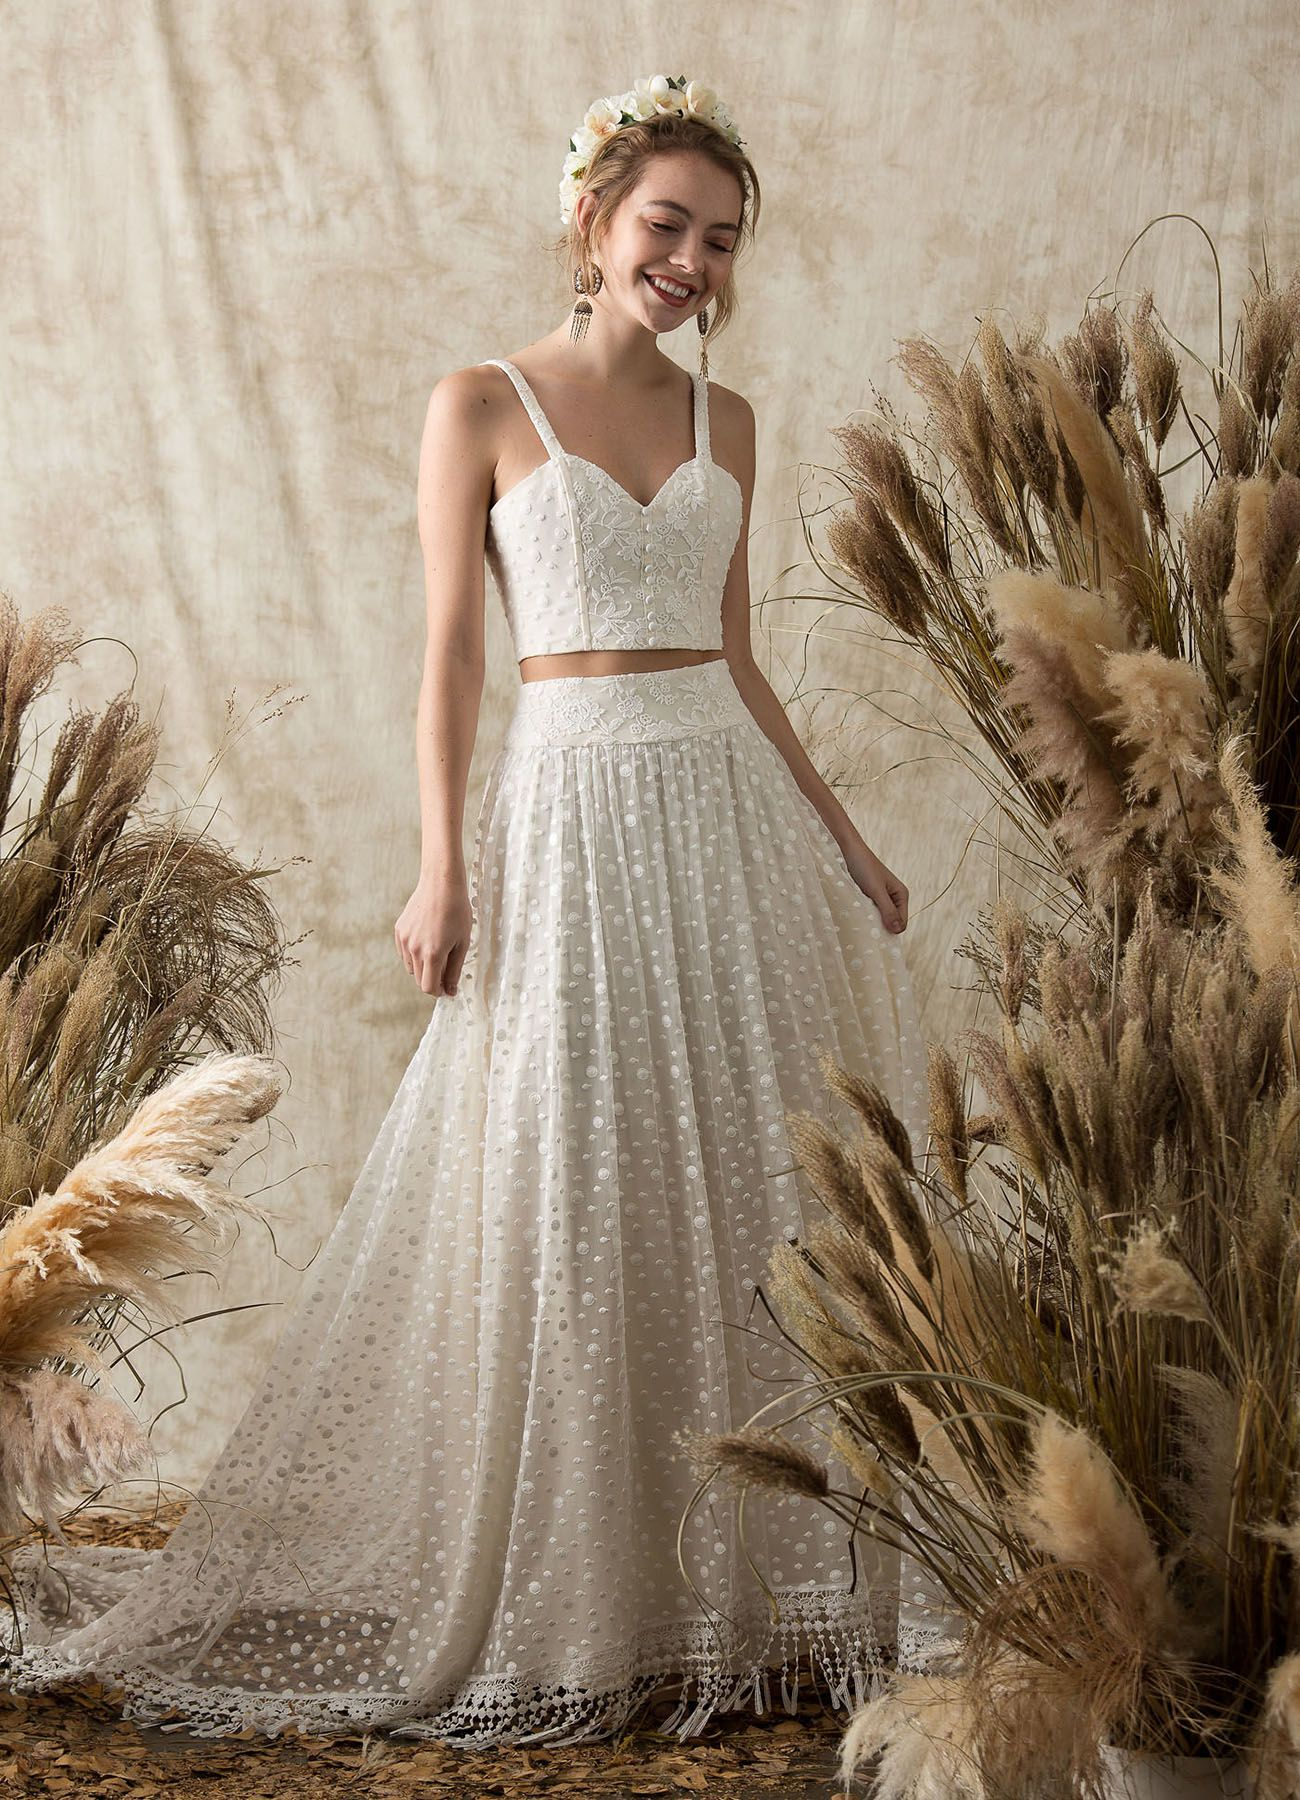 Gowns for the laidback bride the etheria collection from dreamers